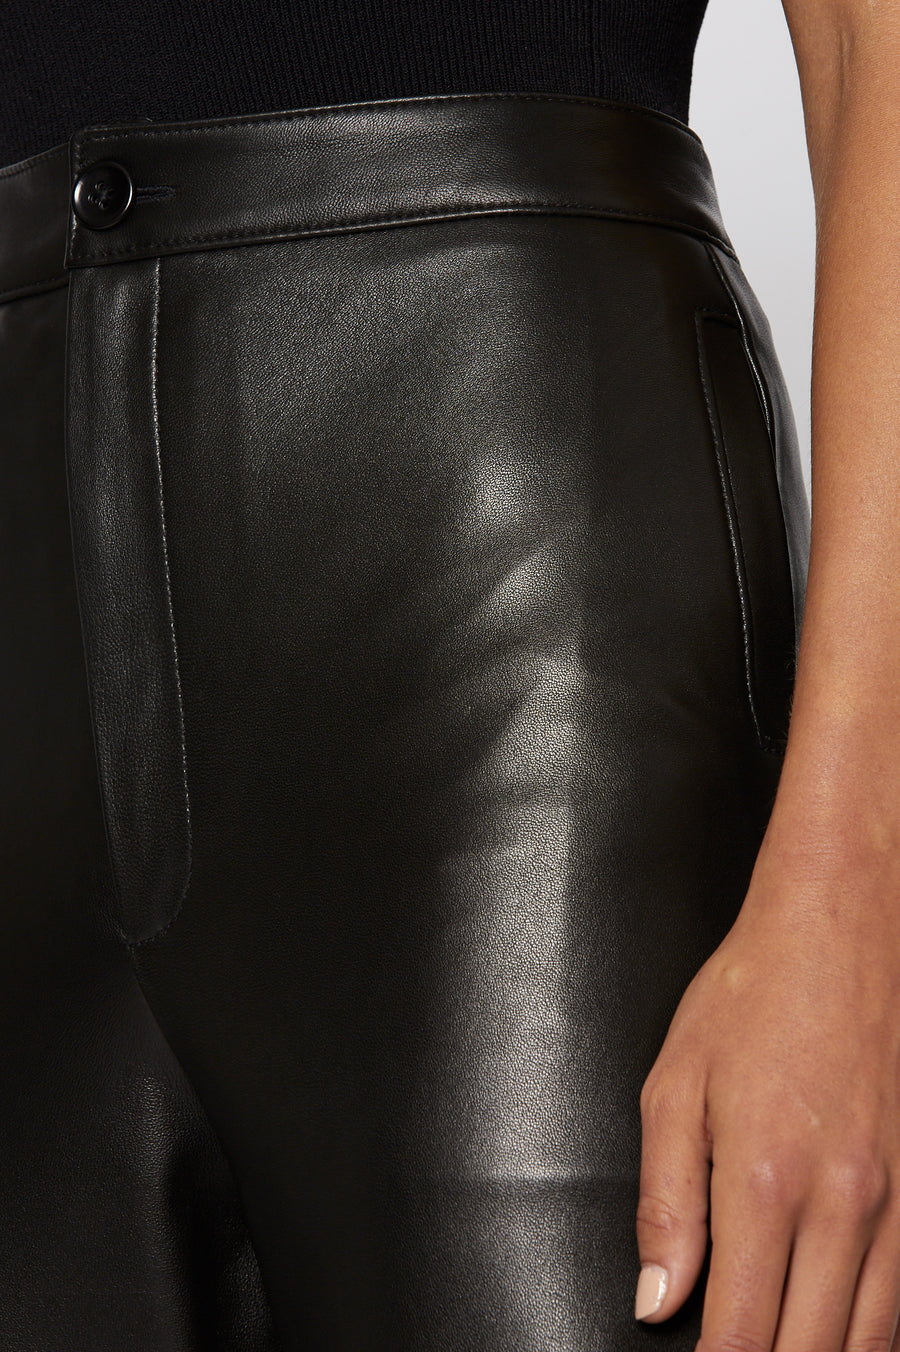 LEATHER TROUSER, 100% leather, falls just above the ankle, mid-rise straight cut, Color Black